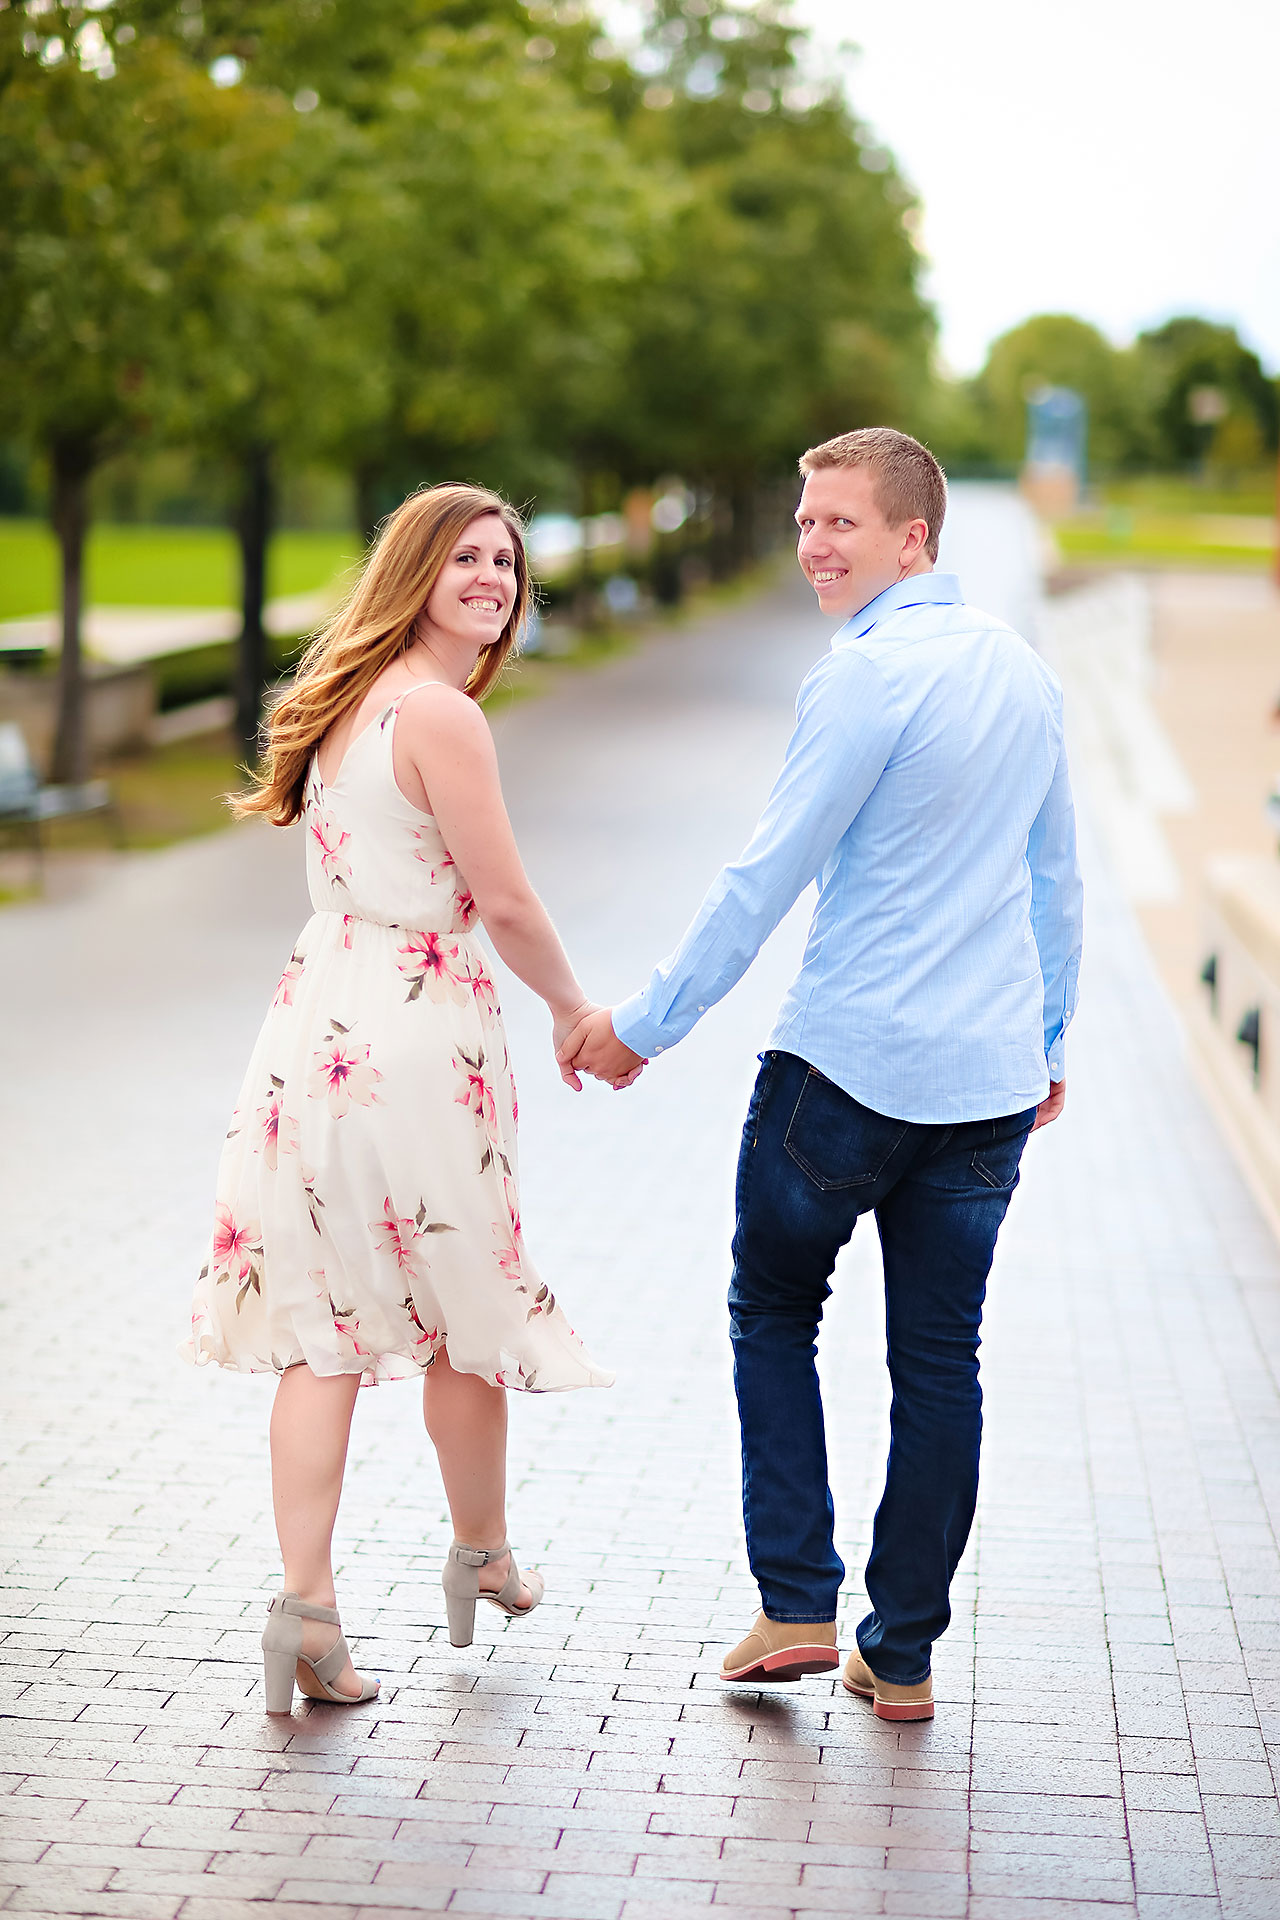 Chelsea Jeff Downtown Indy Engagement Session 164